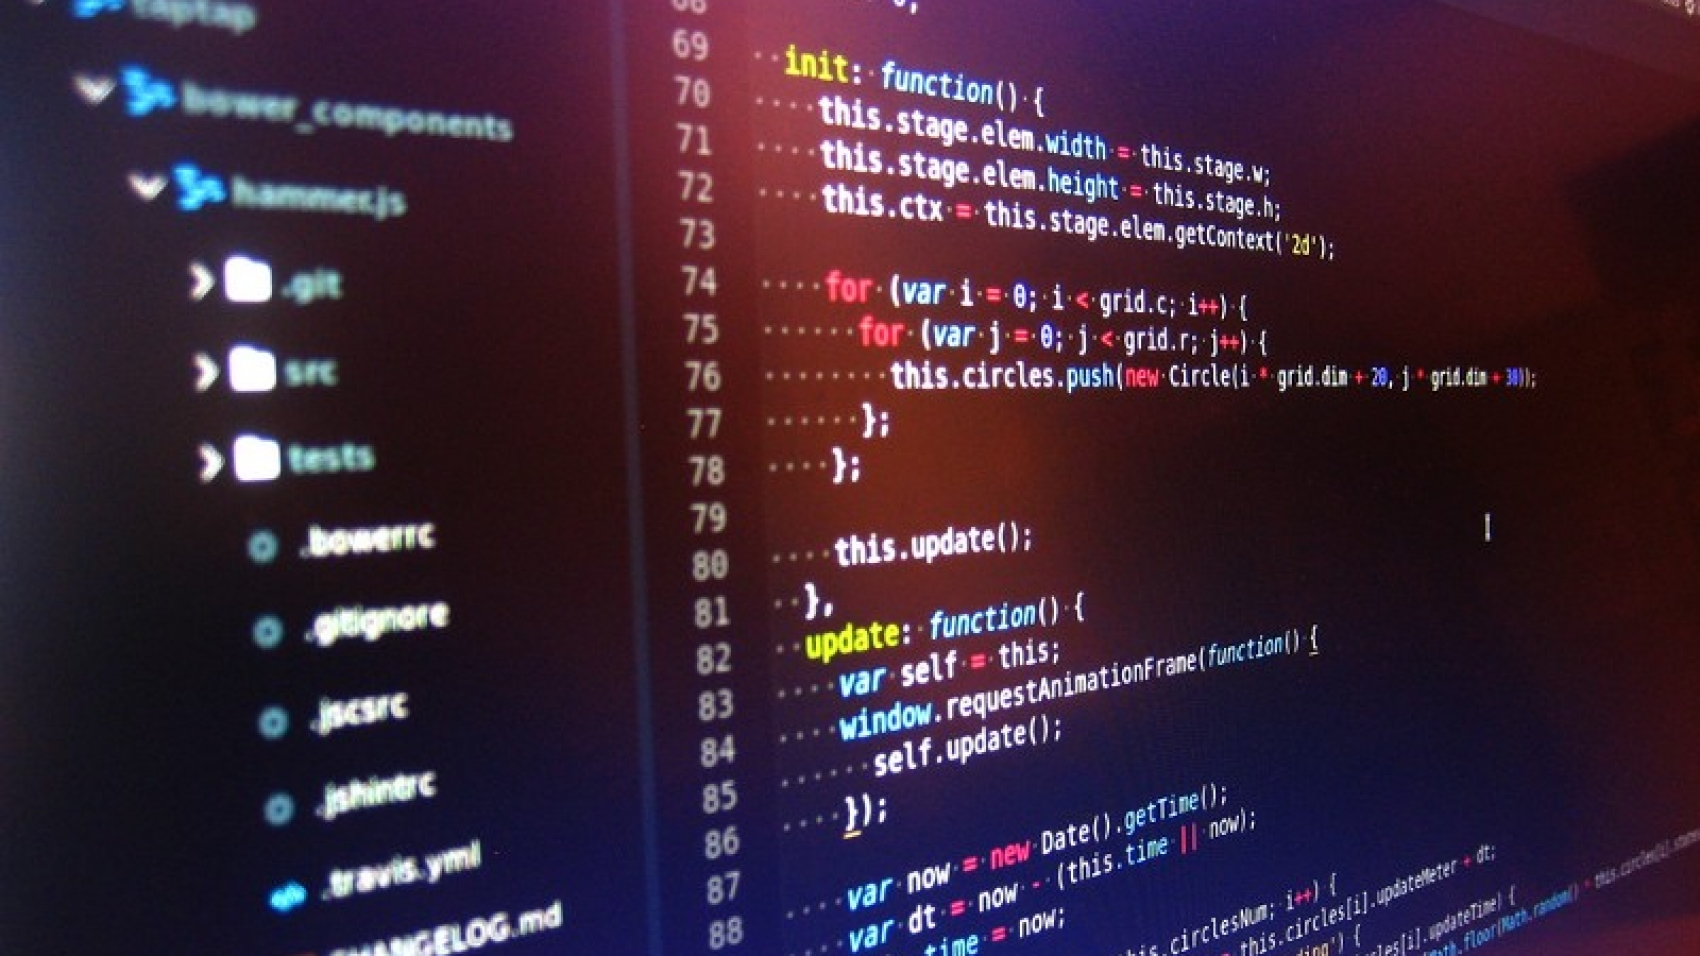 How to enable javascript in browser